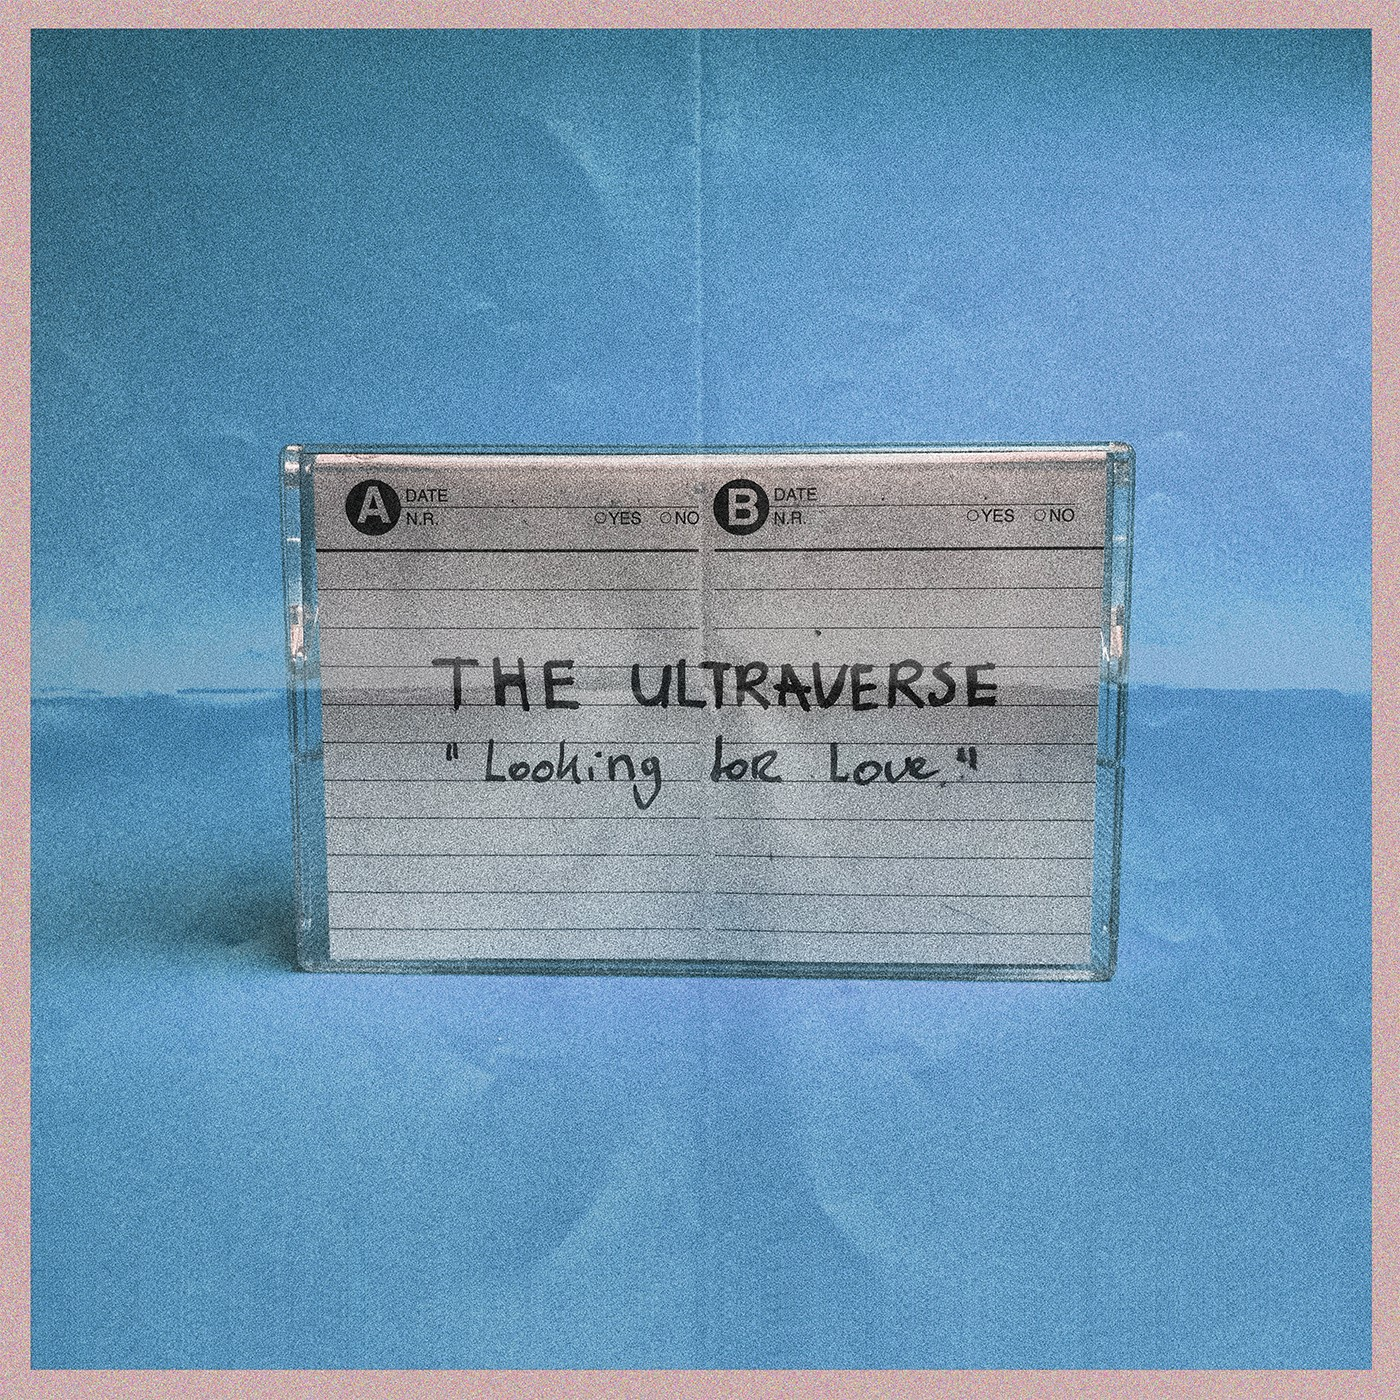 The Ultraverse - Looking For Love ile ilgili görsel sonucu